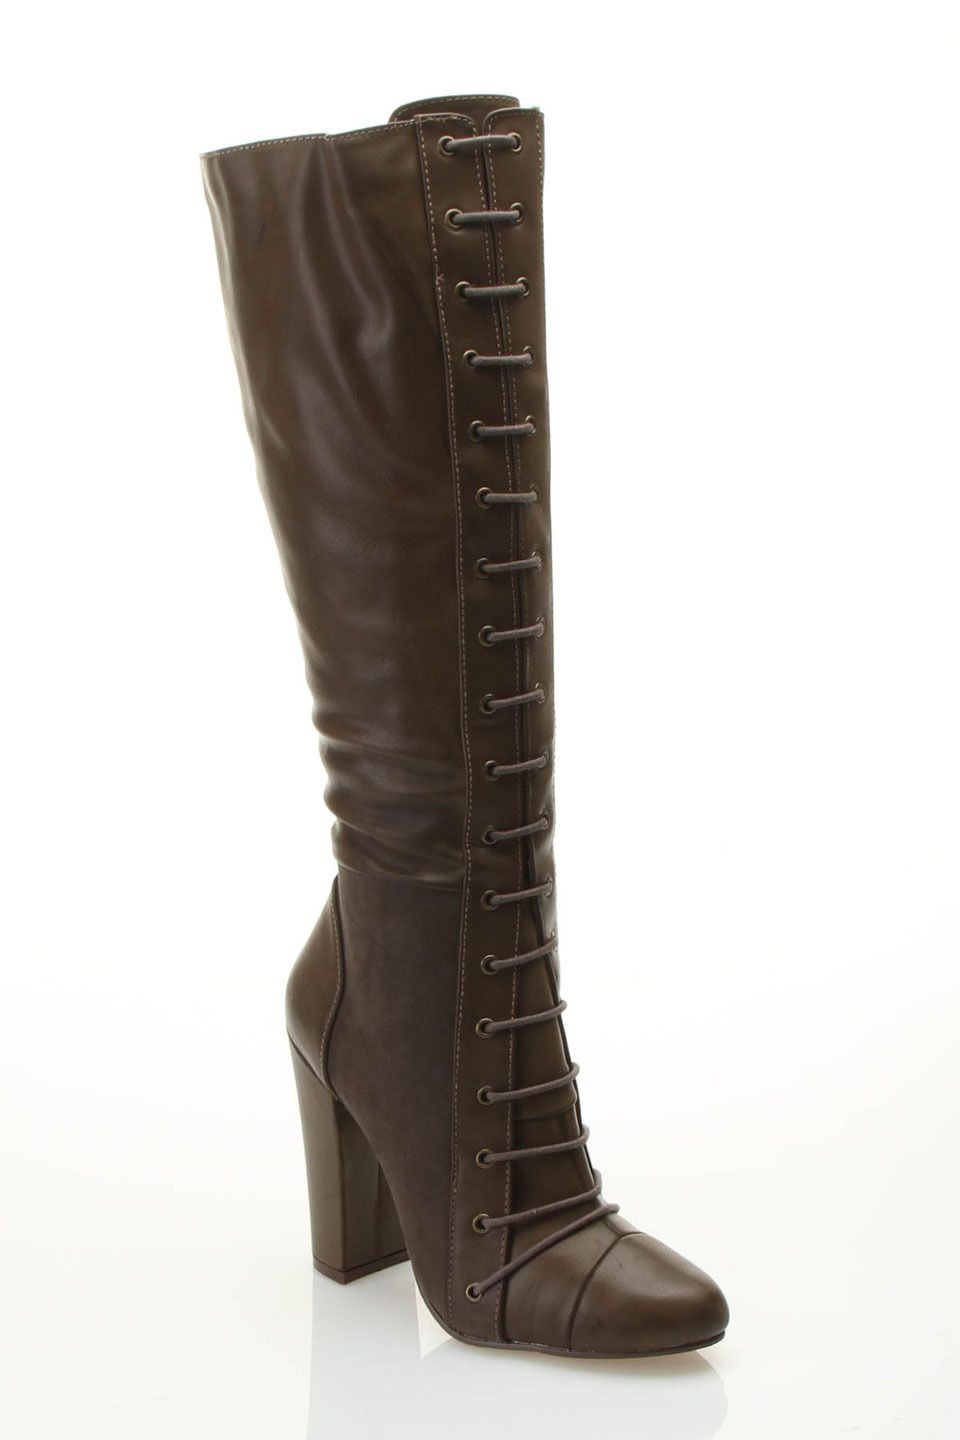 Michael Antonio Beck Lace Up Boot In Olive Beyond the